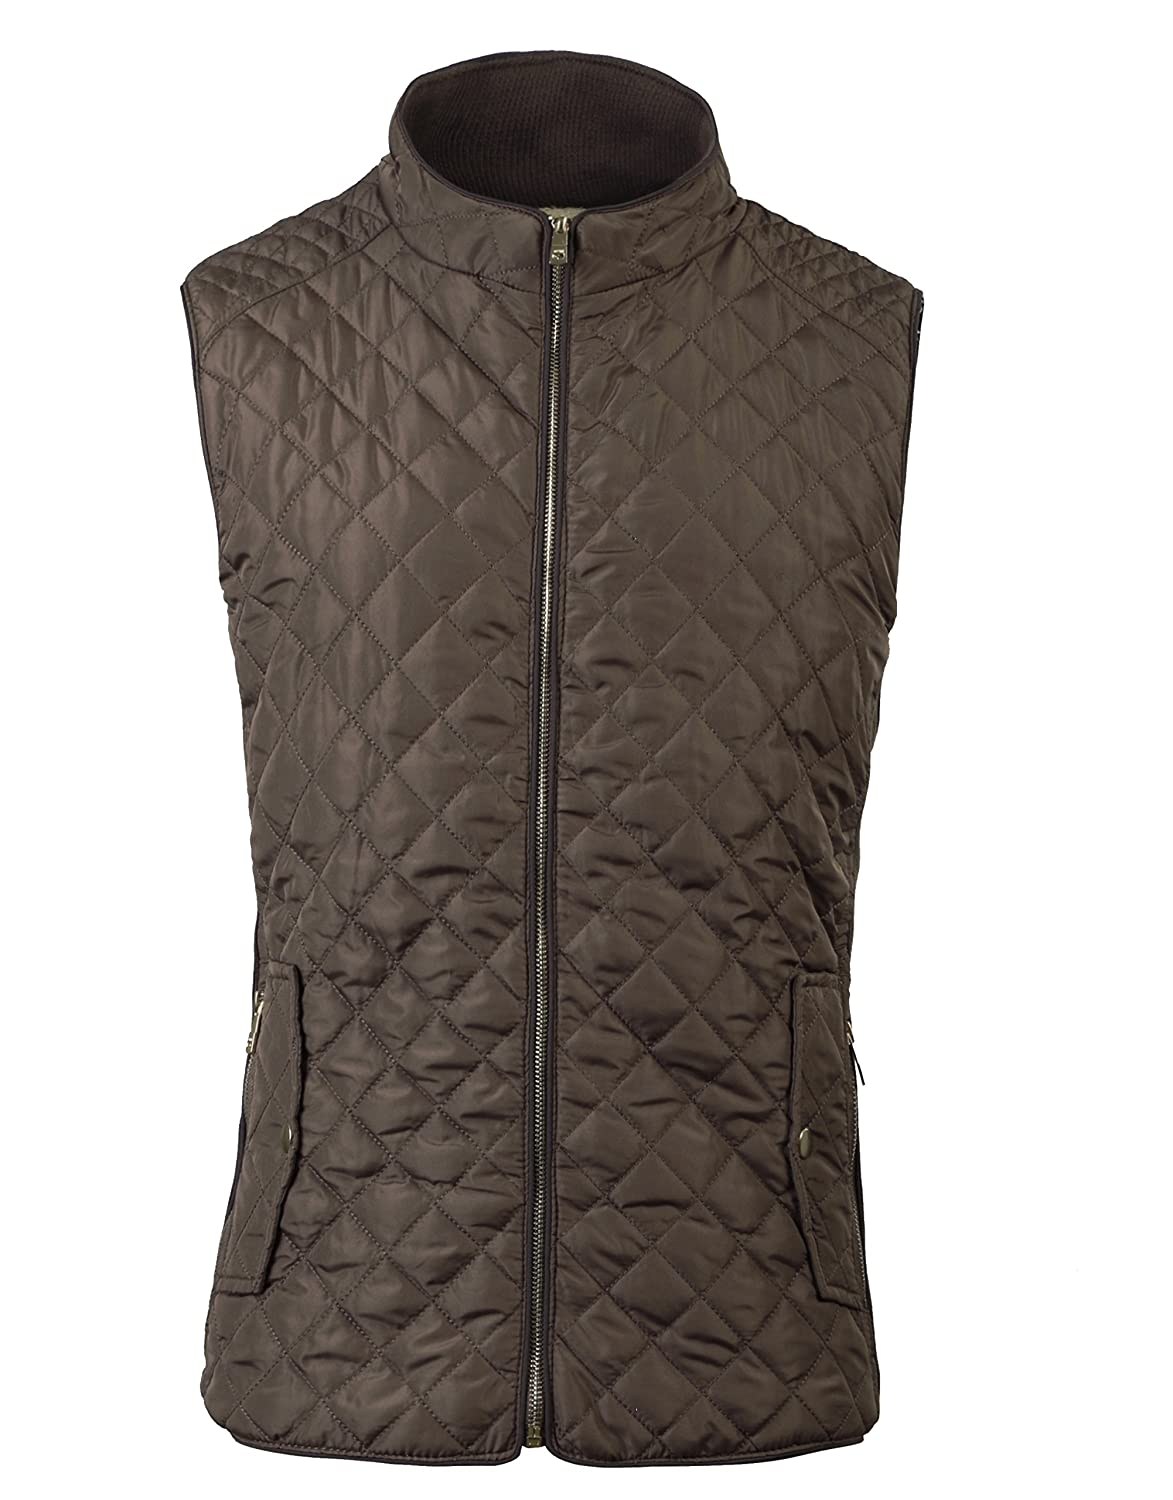 fanhang Women's Lightweight Quilted Zip up Gilet